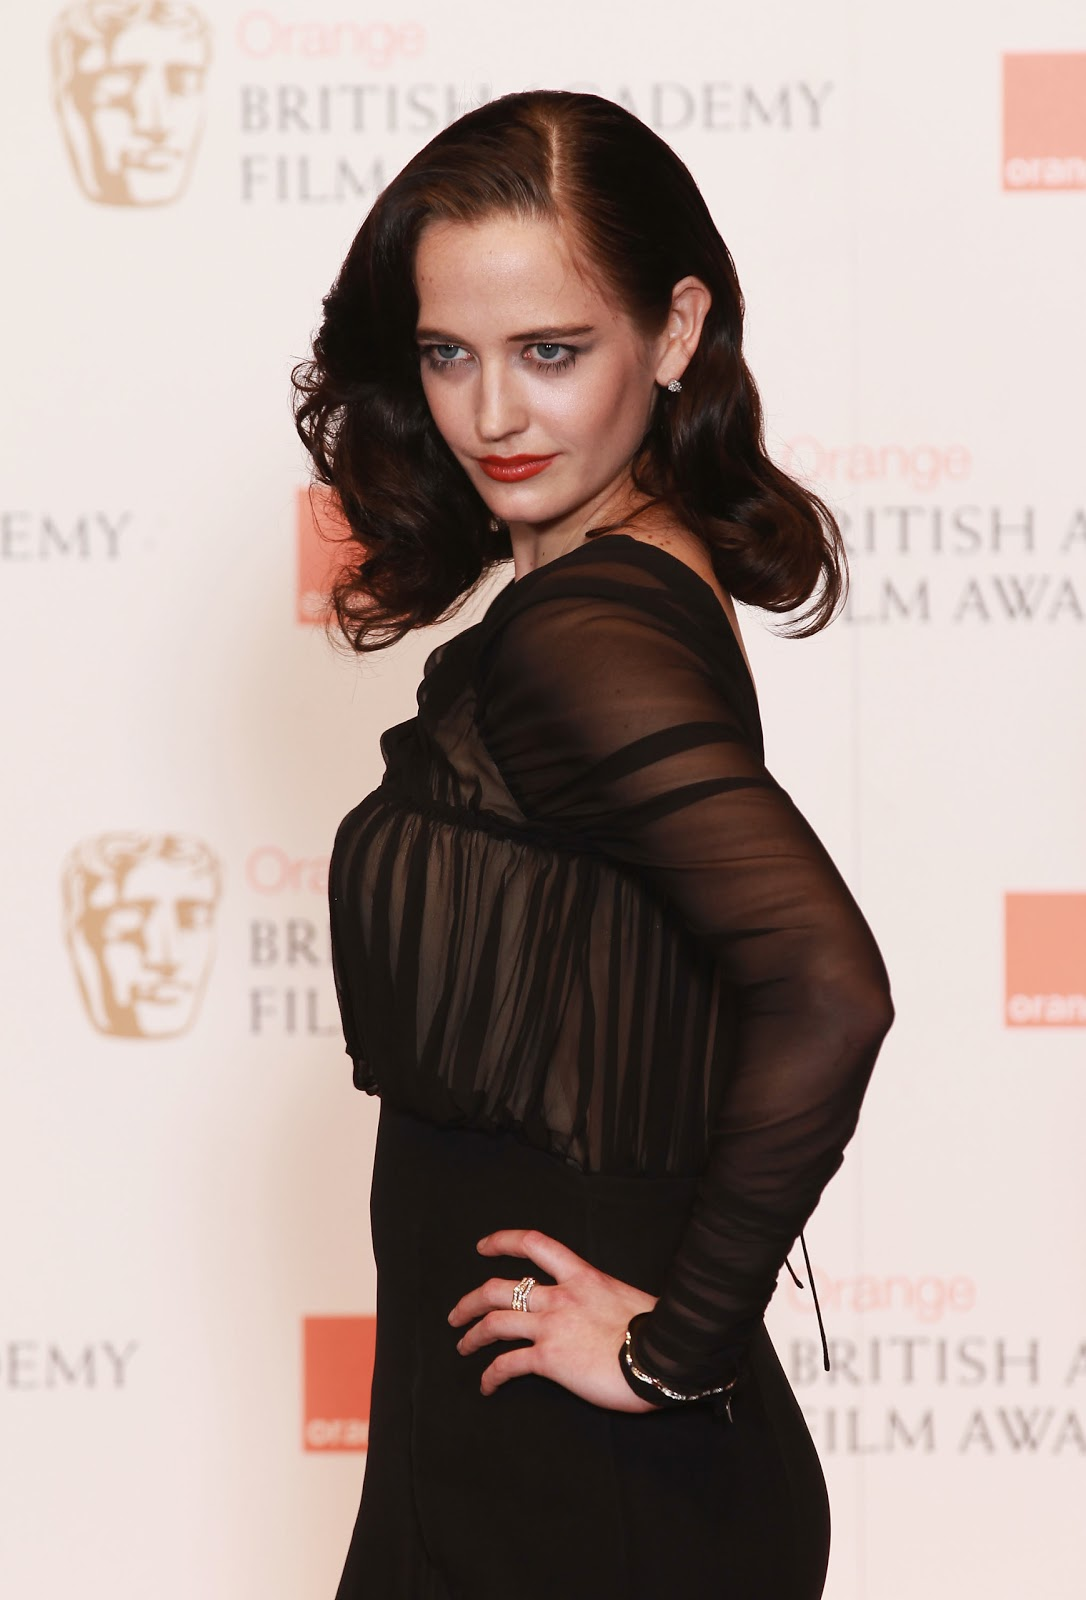 http://3.bp.blogspot.com/-zduU8X8Qb8U/TV2iGQV12II/AAAAAAAAIh4/I1iHWoSyaXQ/s1600/Actress+Eva+Green+with+Montblanc+Jewellery+at+BAFTAS+2011.jpg